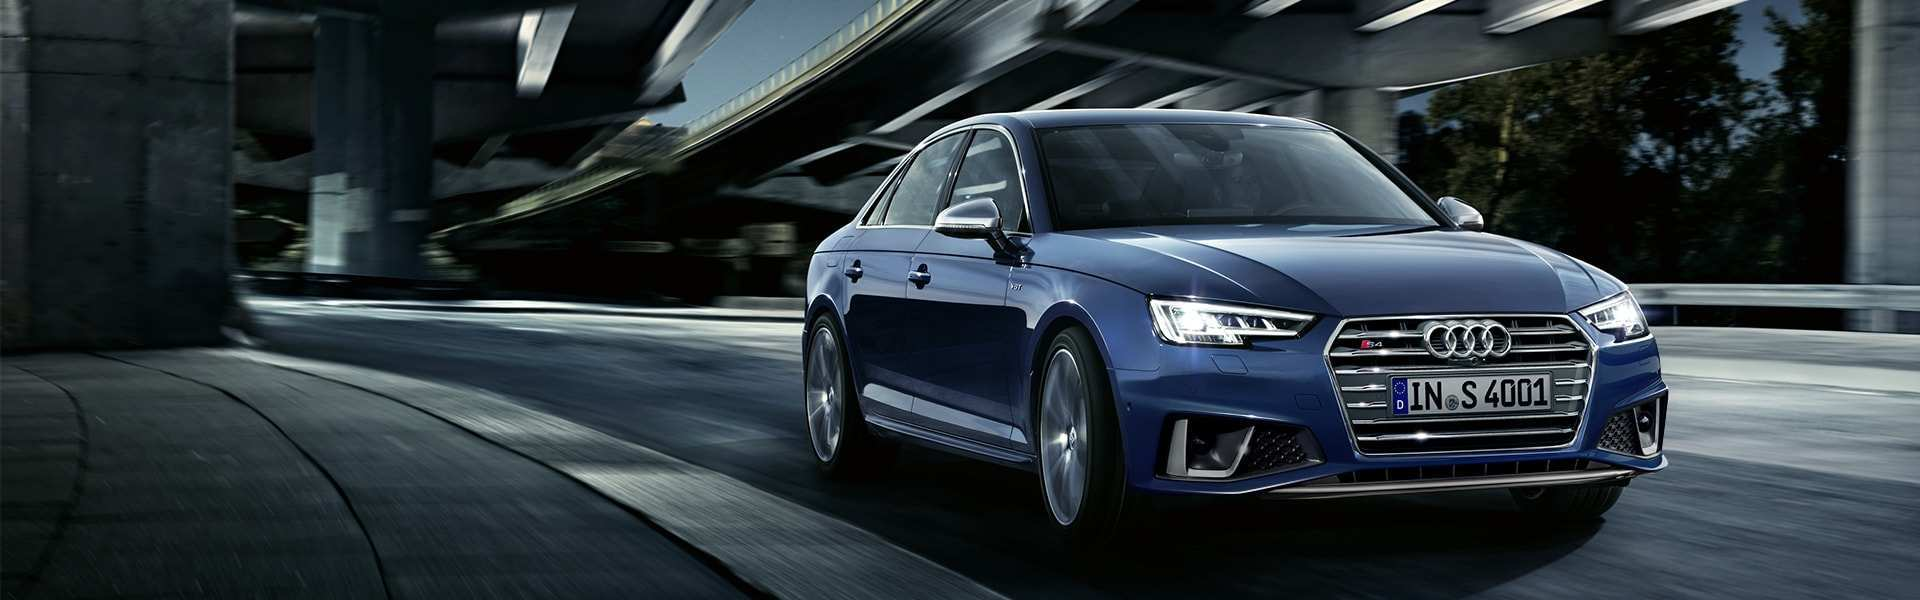 25 The 2019 Audi Rs4 Usa Reviews